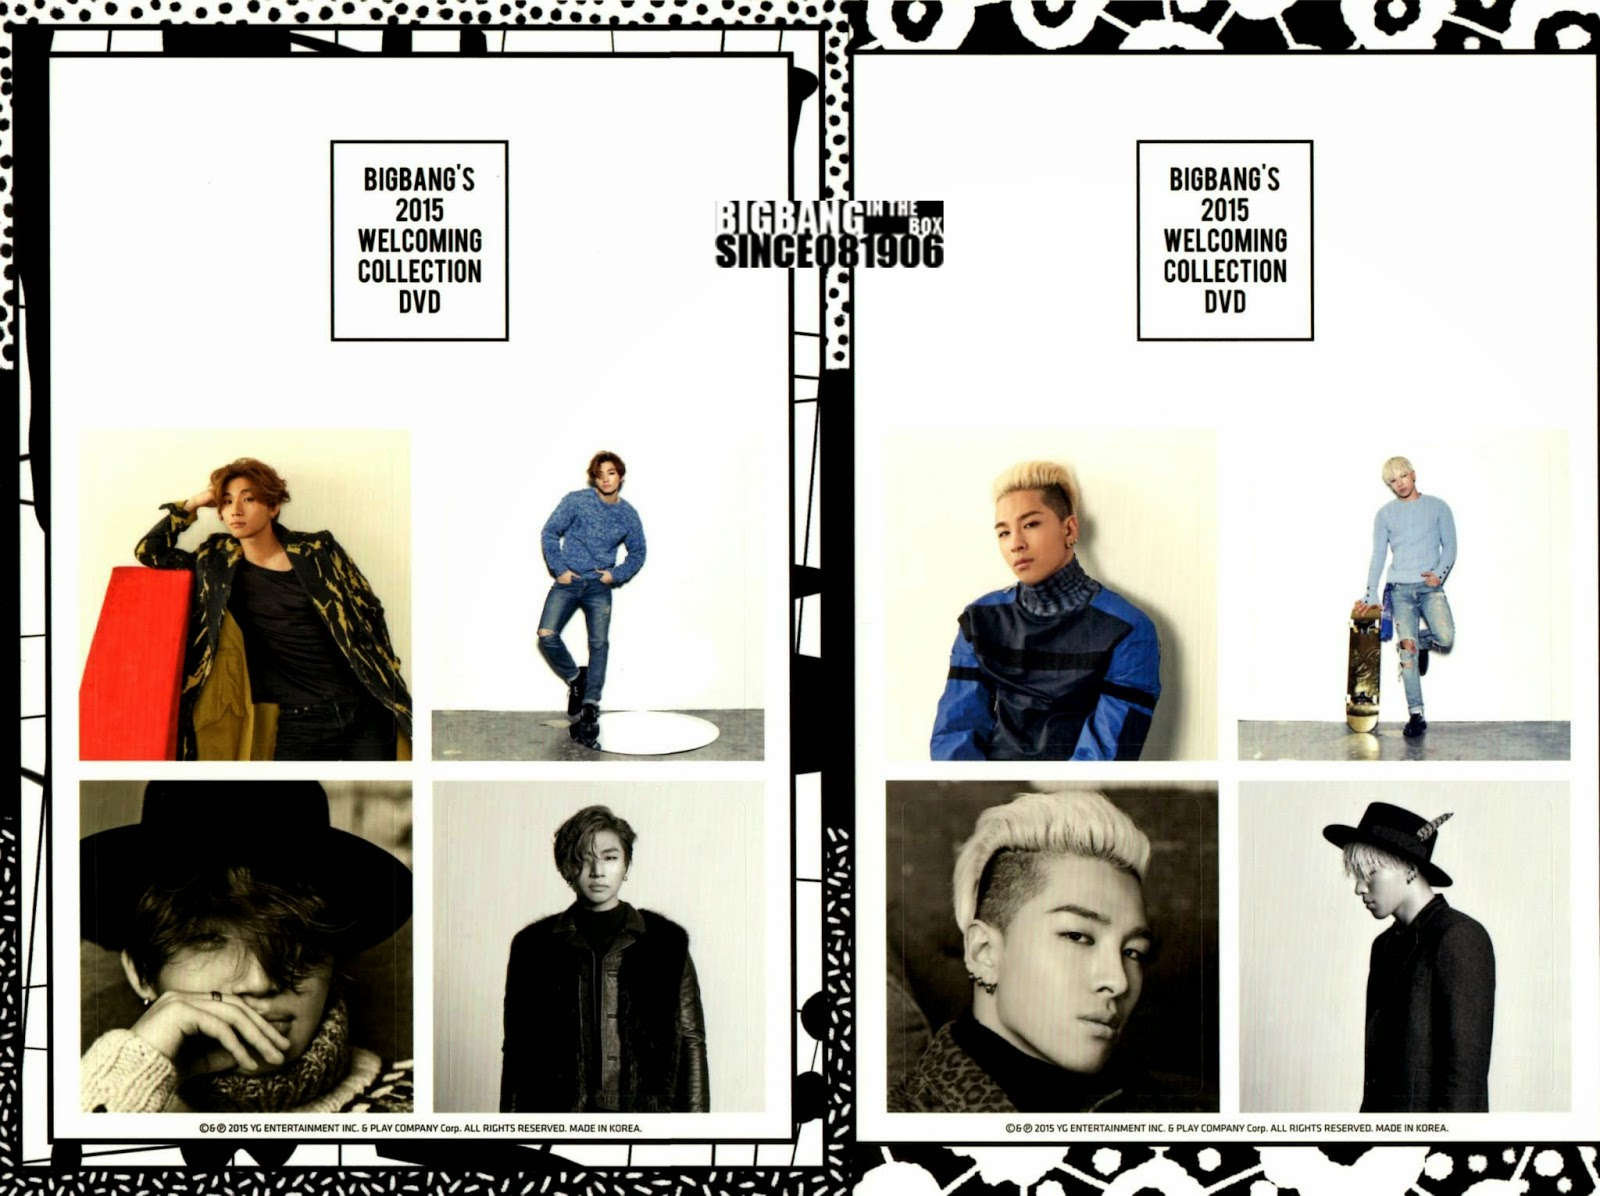 Scans: Big Bang's 2015 Welcoming Collection [PHOTOS]  Scans: Big Bang's 2015 Welcoming Collection [PHOTOS]  Scans: Big Bang's 2015 Welcoming Collection [PHOTOS]  Scans: Big Bang's 2015 Welcoming Collection [PHOTOS]  Scans: Big Bang's 2015 Welcoming Collection [PHOTOS]  Scans: Big Bang's 2015 Welcoming Collection [PHOTOS]  Scans: Big Bang's 2015 Welcoming Collection [PHOTOS]  Scans: Big Bang's 2015 Welcoming Collection [PHOTOS]  Scans: Big Bang's 2015 Welcoming Collection [PHOTOS]  Scans: Big Bang's 2015 Welcoming Collection [PHOTOS]  Scans: Big Bang's 2015 Welcoming Collection [PHOTOS]  Scans: Big Bang's 2015 Welcoming Collection [PHOTOS]  Scans: Big Bang's 2015 Welcoming Collection [PHOTOS]  Scans: Big Bang's 2015 Welcoming Collection [PHOTOS]  Scans: Big Bang's 2015 Welcoming Collection [PHOTOS]  Scans: Big Bang's 2015 Welcoming Collection [PHOTOS]  Scans: Big Bang's 2015 Welcoming Collection [PHOTOS]  Scans: Big Bang's 2015 Welcoming Collection [PHOTOS]  Scans: Big Bang's 2015 Welcoming Collection [PHOTOS]  Scans: Big Bang's 2015 Welcoming Collection [PHOTOS]  Scans: Big Bang's 2015 Welcoming Collection [PHOTOS]  Scans: Big Bang's 2015 Welcoming Collection [PHOTOS]  Scans: Big Bang's 2015 Welcoming Collection [PHOTOS]  Scans: Big Bang's 2015 Welcoming Collection [PHOTOS]  Scans: Big Bang's 2015 Welcoming Collection [PHOTOS]  Scans: Big Bang's 2015 Welcoming Collection [PHOTOS]  Scans: Big Bang's 2015 Welcoming Collection [PHOTOS]  Scans: Big Bang's 2015 Welcoming Collection [PHOTOS]  Scans: Big Bang's 2015 Welcoming Collection [PHOTOS]  Scans: Big Bang's 2015 Welcoming Collection [PHOTOS]  Scans: Big Bang's 2015 Welcoming Collection [PHOTOS]  Scans: Big Bang's 2015 Welcoming Collection [PHOTOS]  Scans: Big Bang's 2015 Welcoming Collection [PHOTOS]  Scans: Big Bang's 2015 Welcoming Collection [PHOTOS]  Scans: Big Bang's 2015 Welcoming Collection [PHOTOS]  Scans: Big Bang's 2015 Welcoming Collection [PHOTOS]  Scans: Big Bang's 2015 Welcoming Collection [PHOTOS]  Scans: Big Bang's 2015 Welcoming Collection [PHOTOS]  Scans: Big Bang's 2015 Welcoming Collection [PHOTOS]  Scans: Big Bang's 2015 Welcoming Collection [PHOTOS]  Scans: Big Bang's 2015 Welcoming Collection [PHOTOS]  Scans: Big Bang's 2015 Welcoming Collection [PHOTOS]  Scans: Big Bang's 2015 Welcoming Collection [PHOTOS]  Scans: Big Bang's 2015 Welcoming Collection [PHOTOS]  Scans: Big Bang's 2015 Welcoming Collection [PHOTOS]  Scans: Big Bang's 2015 Welcoming Collection [PHOTOS]  Scans: Big Bang's 2015 Welcoming Collection [PHOTOS]  Scans: Big Bang's 2015 Welcoming Collection [PHOTOS]  Scans: Big Bang's 2015 Welcoming Collection [PHOTOS]  Scans: Big Bang's 2015 Welcoming Collection [PHOTOS]  Scans: Big Bang's 2015 Welcoming Collection [PHOTOS]  Scans: Big Bang's 2015 Welcoming Collection [PHOTOS]  Scans: Big Bang's 2015 Welcoming Collection [PHOTOS]  Scans: Big Bang's 2015 Welcoming Collection [PHOTOS]  Scans: Big Bang's 2015 Welcoming Collection [PHOTOS]  Scans: Big Bang's 2015 Welcoming Collection [PHOTOS]  Scans: Big Bang's 2015 Welcoming Collection [PHOTOS]  Scans: Big Bang's 2015 Welcoming Collection [PHOTOS]  Scans: Big Bang's 2015 Welcoming Collection [PHOTOS]  Scans: Big Bang's 2015 Welcoming Collection [PHOTOS]  Scans: Big Bang's 2015 Welcoming Collection [PHOTOS]  Scans: Big Bang's 2015 Welcoming Collection [PHOTOS]